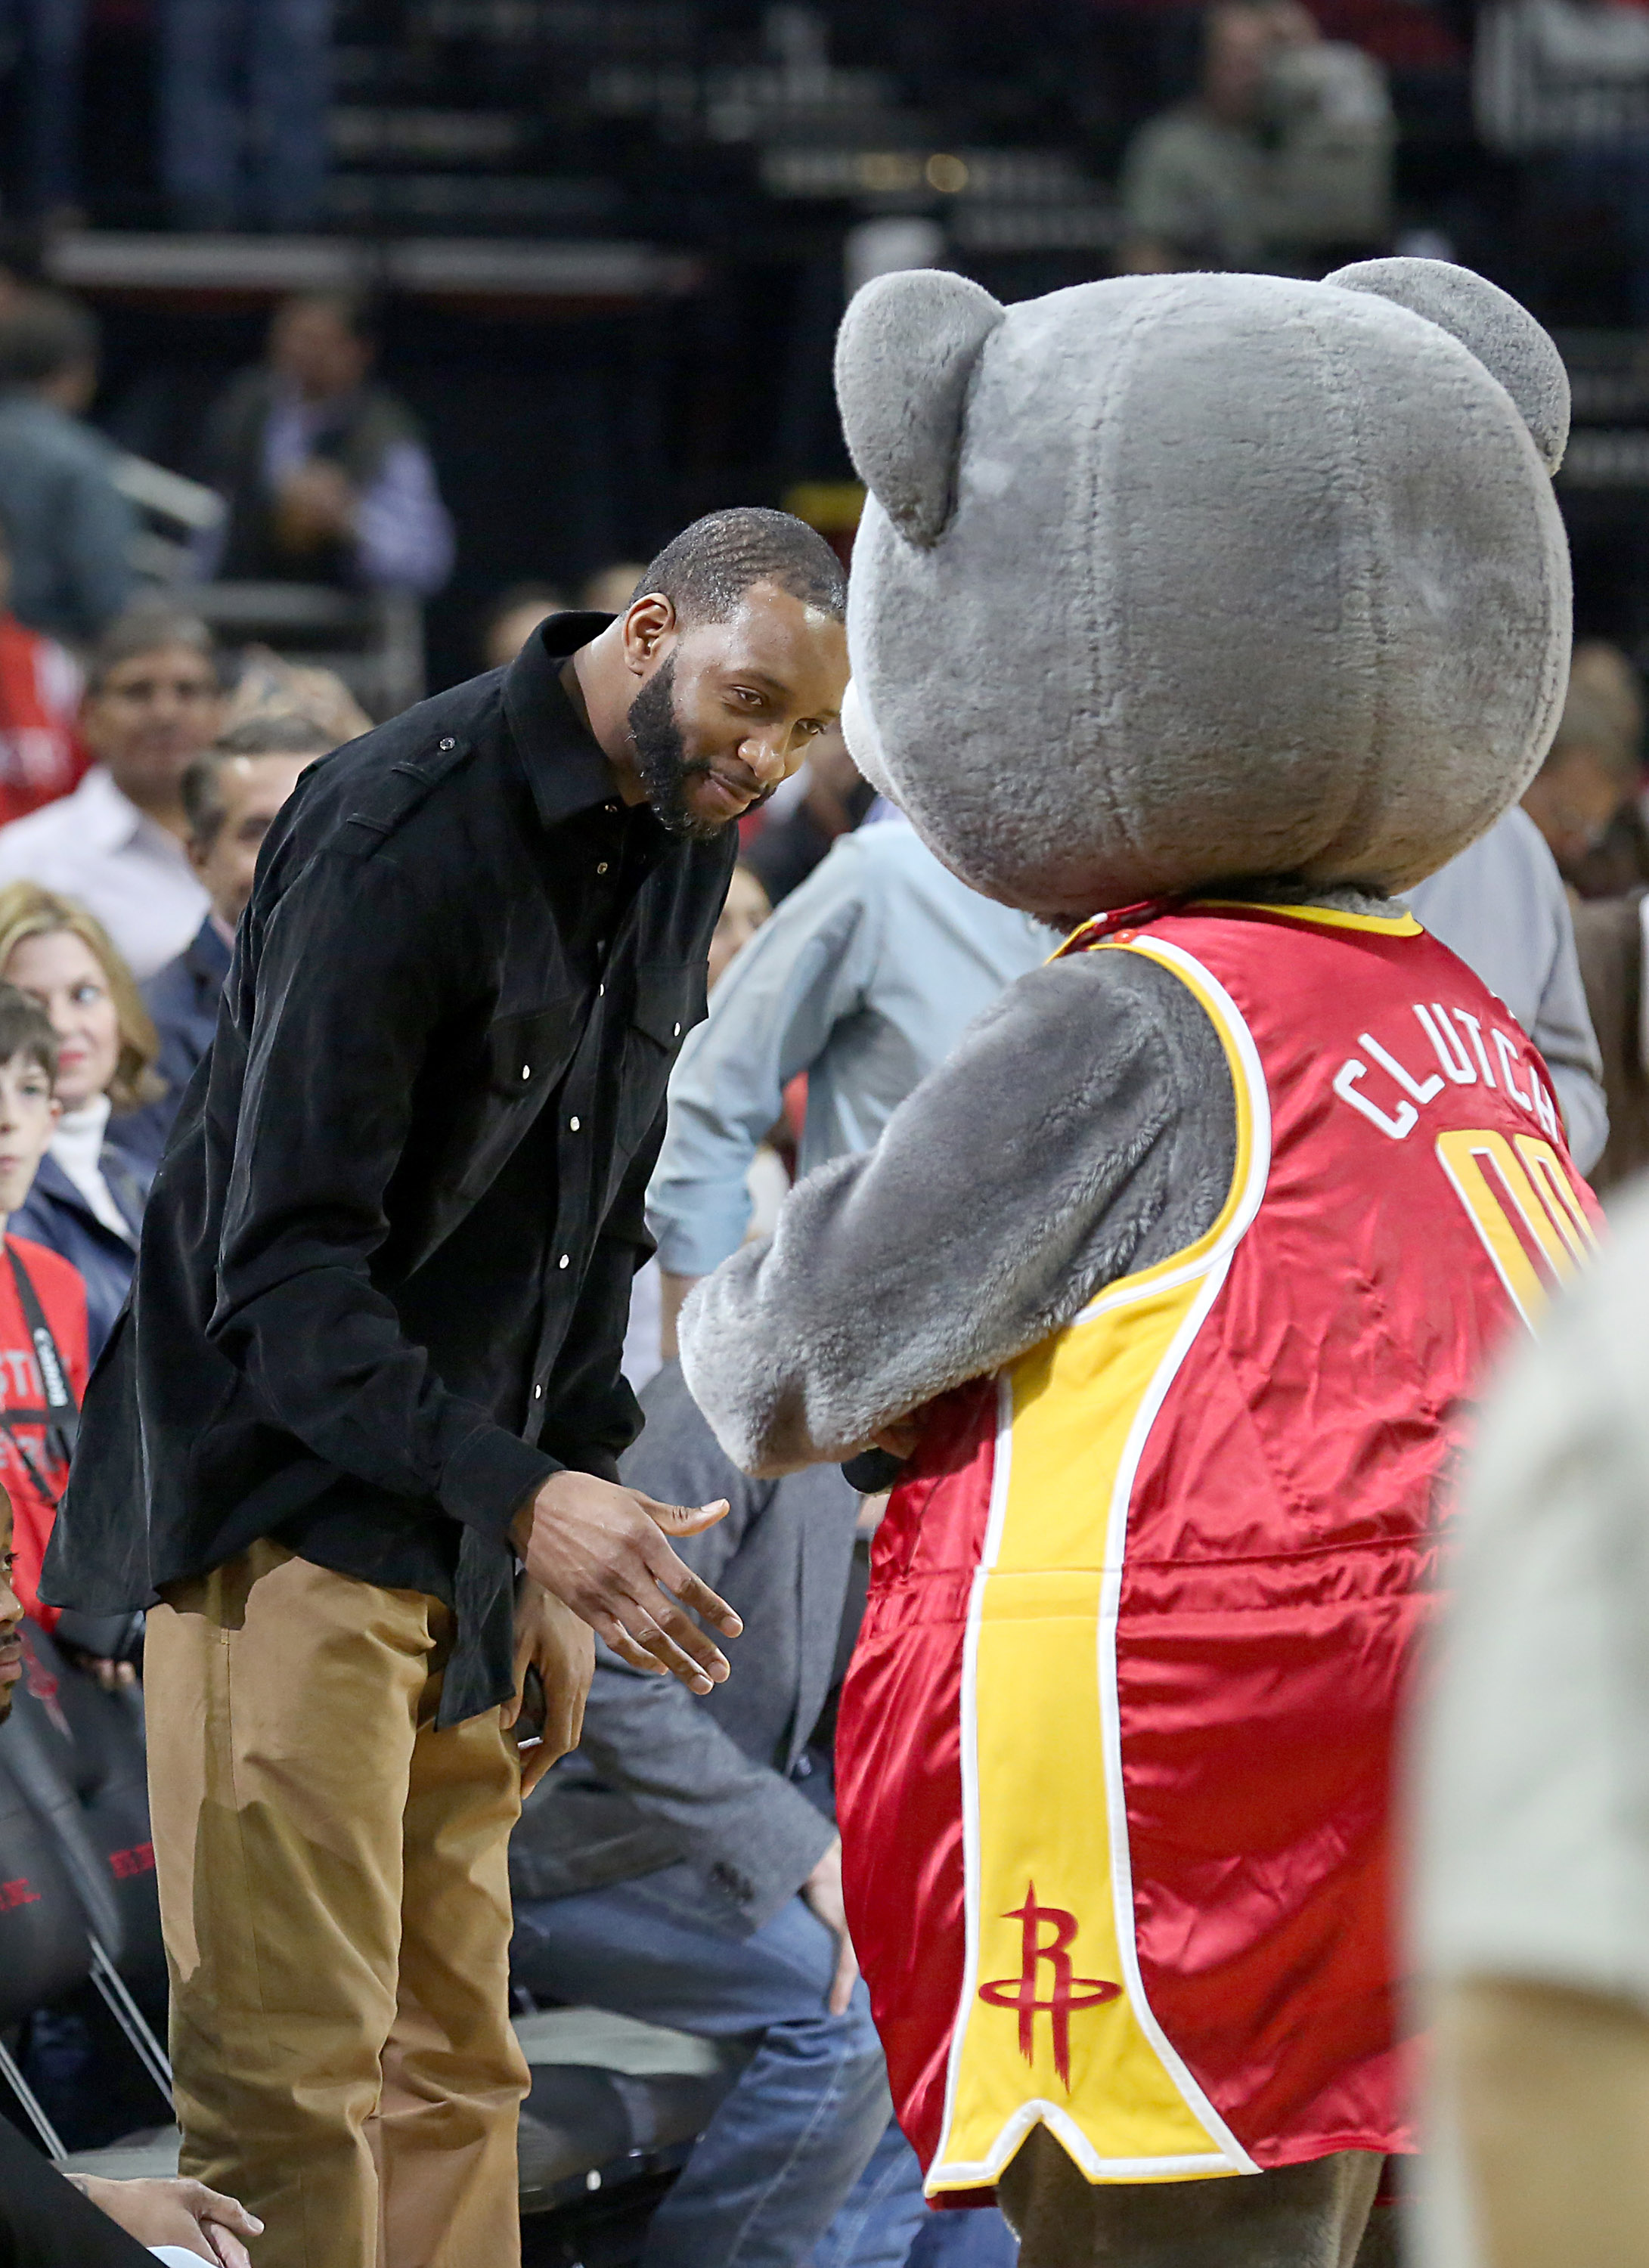 T-Mac, bowing like I would to Worrell right now.